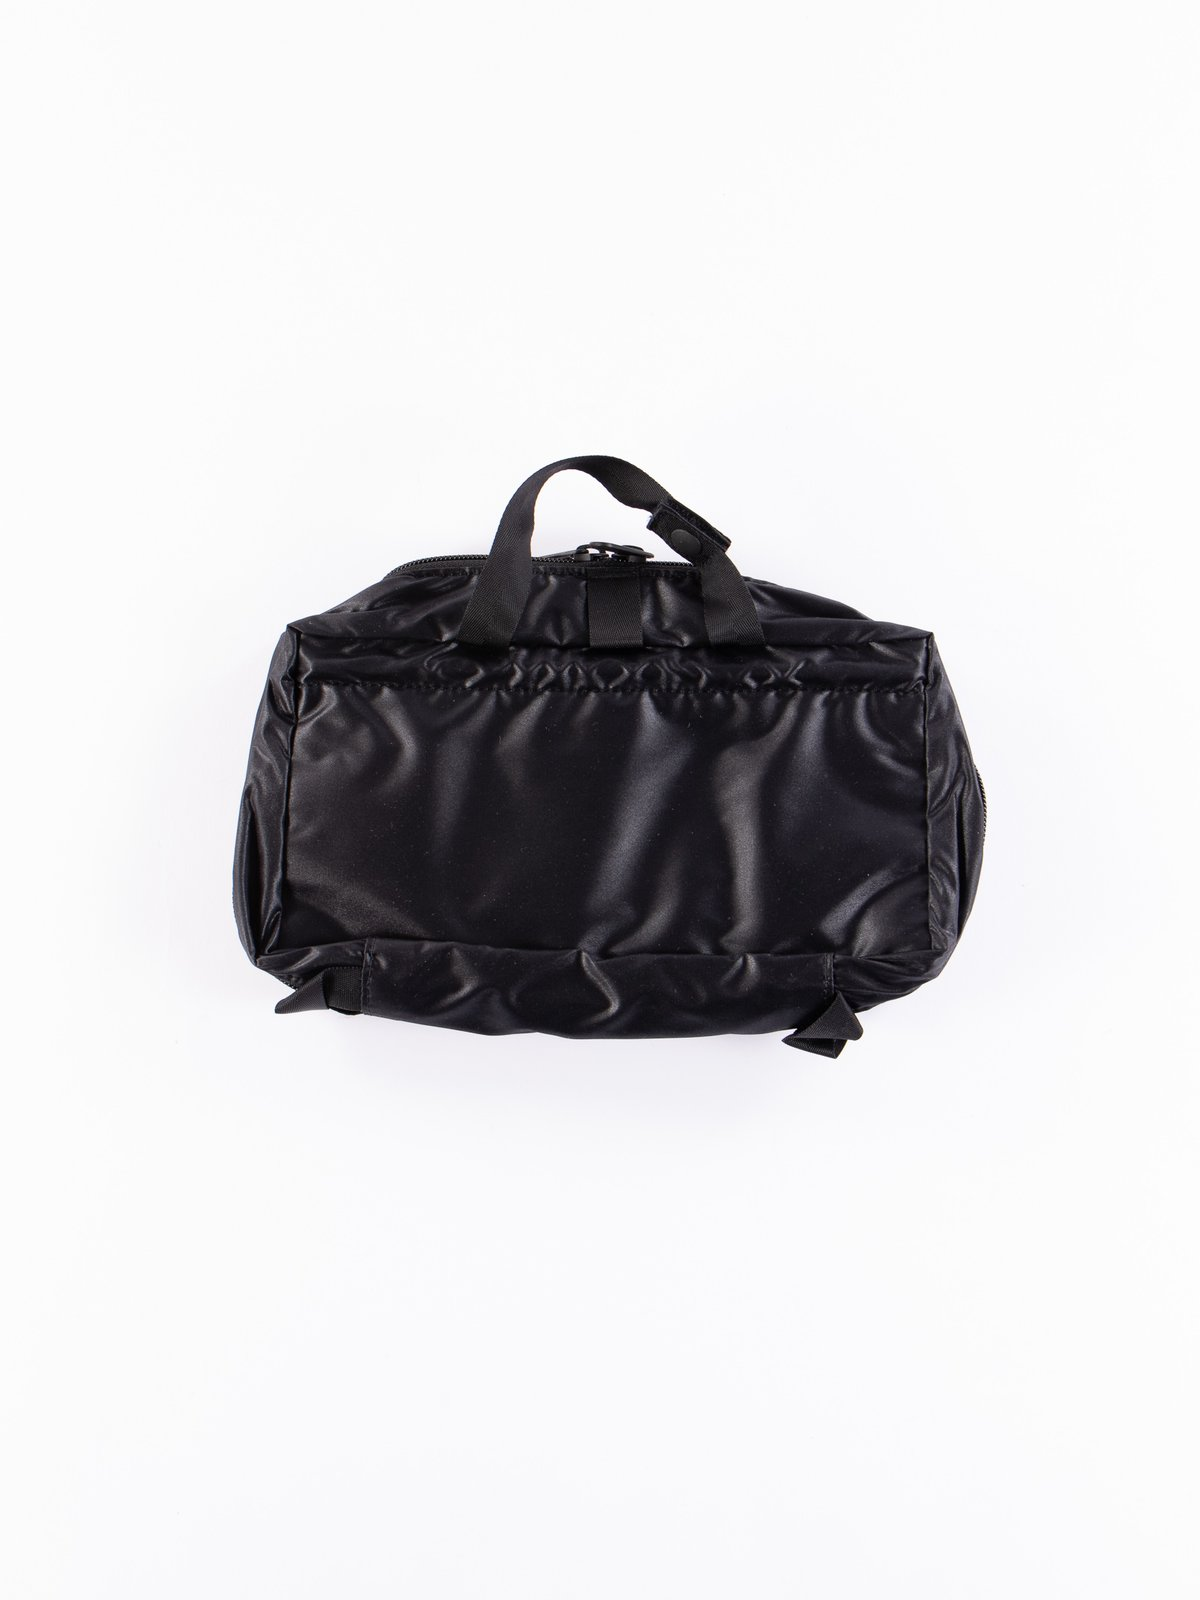 Black Snack Pack 09811 Cosme Pouch - Image 3